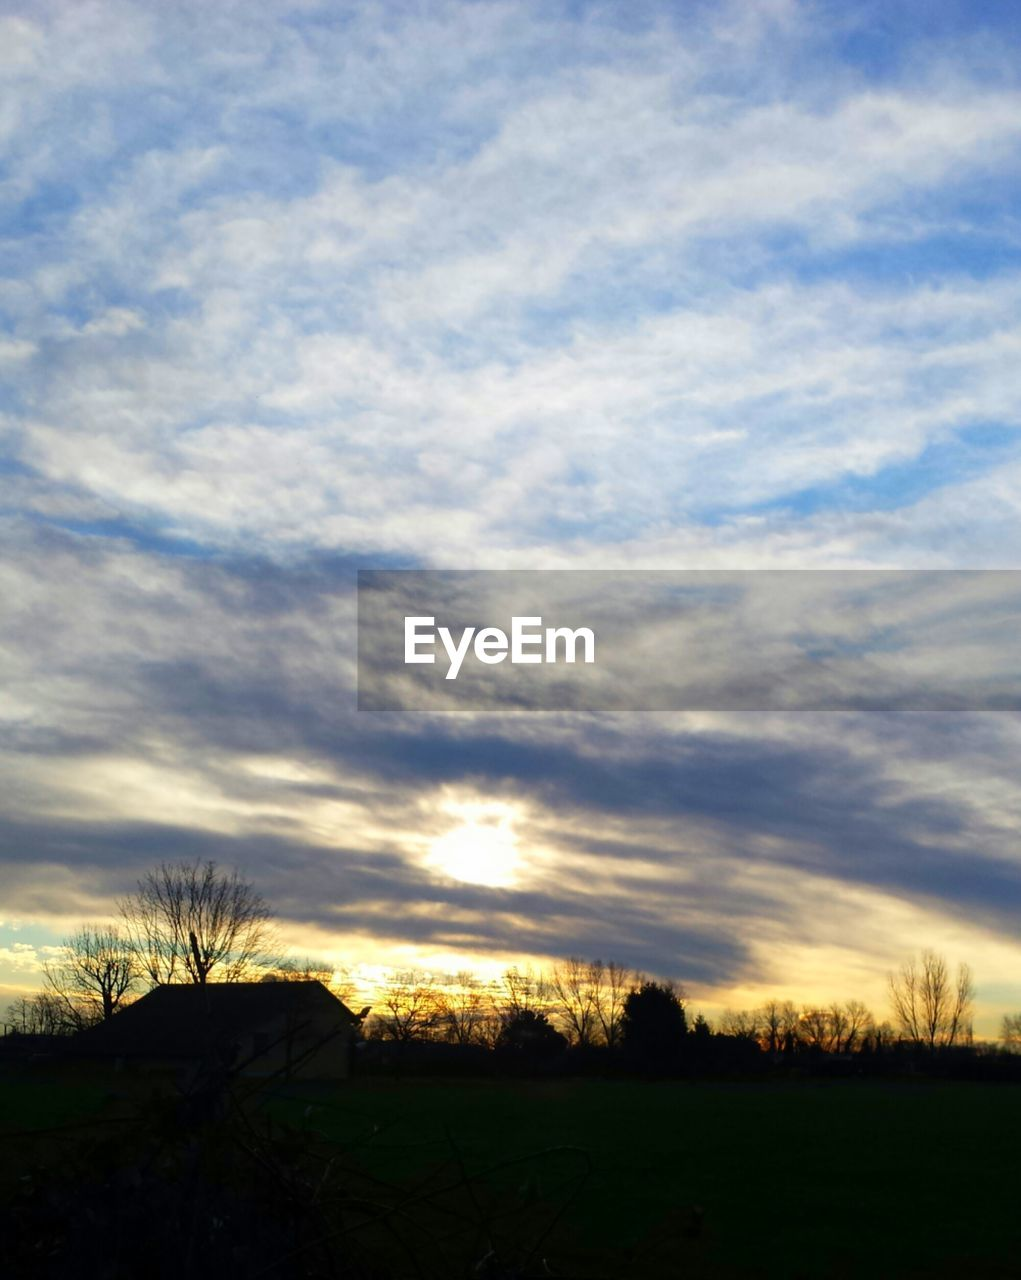 sunset, sky, tranquil scene, cloud - sky, scenics, silhouette, nature, beauty in nature, tranquility, no people, field, landscape, tree, outdoors, grass, day